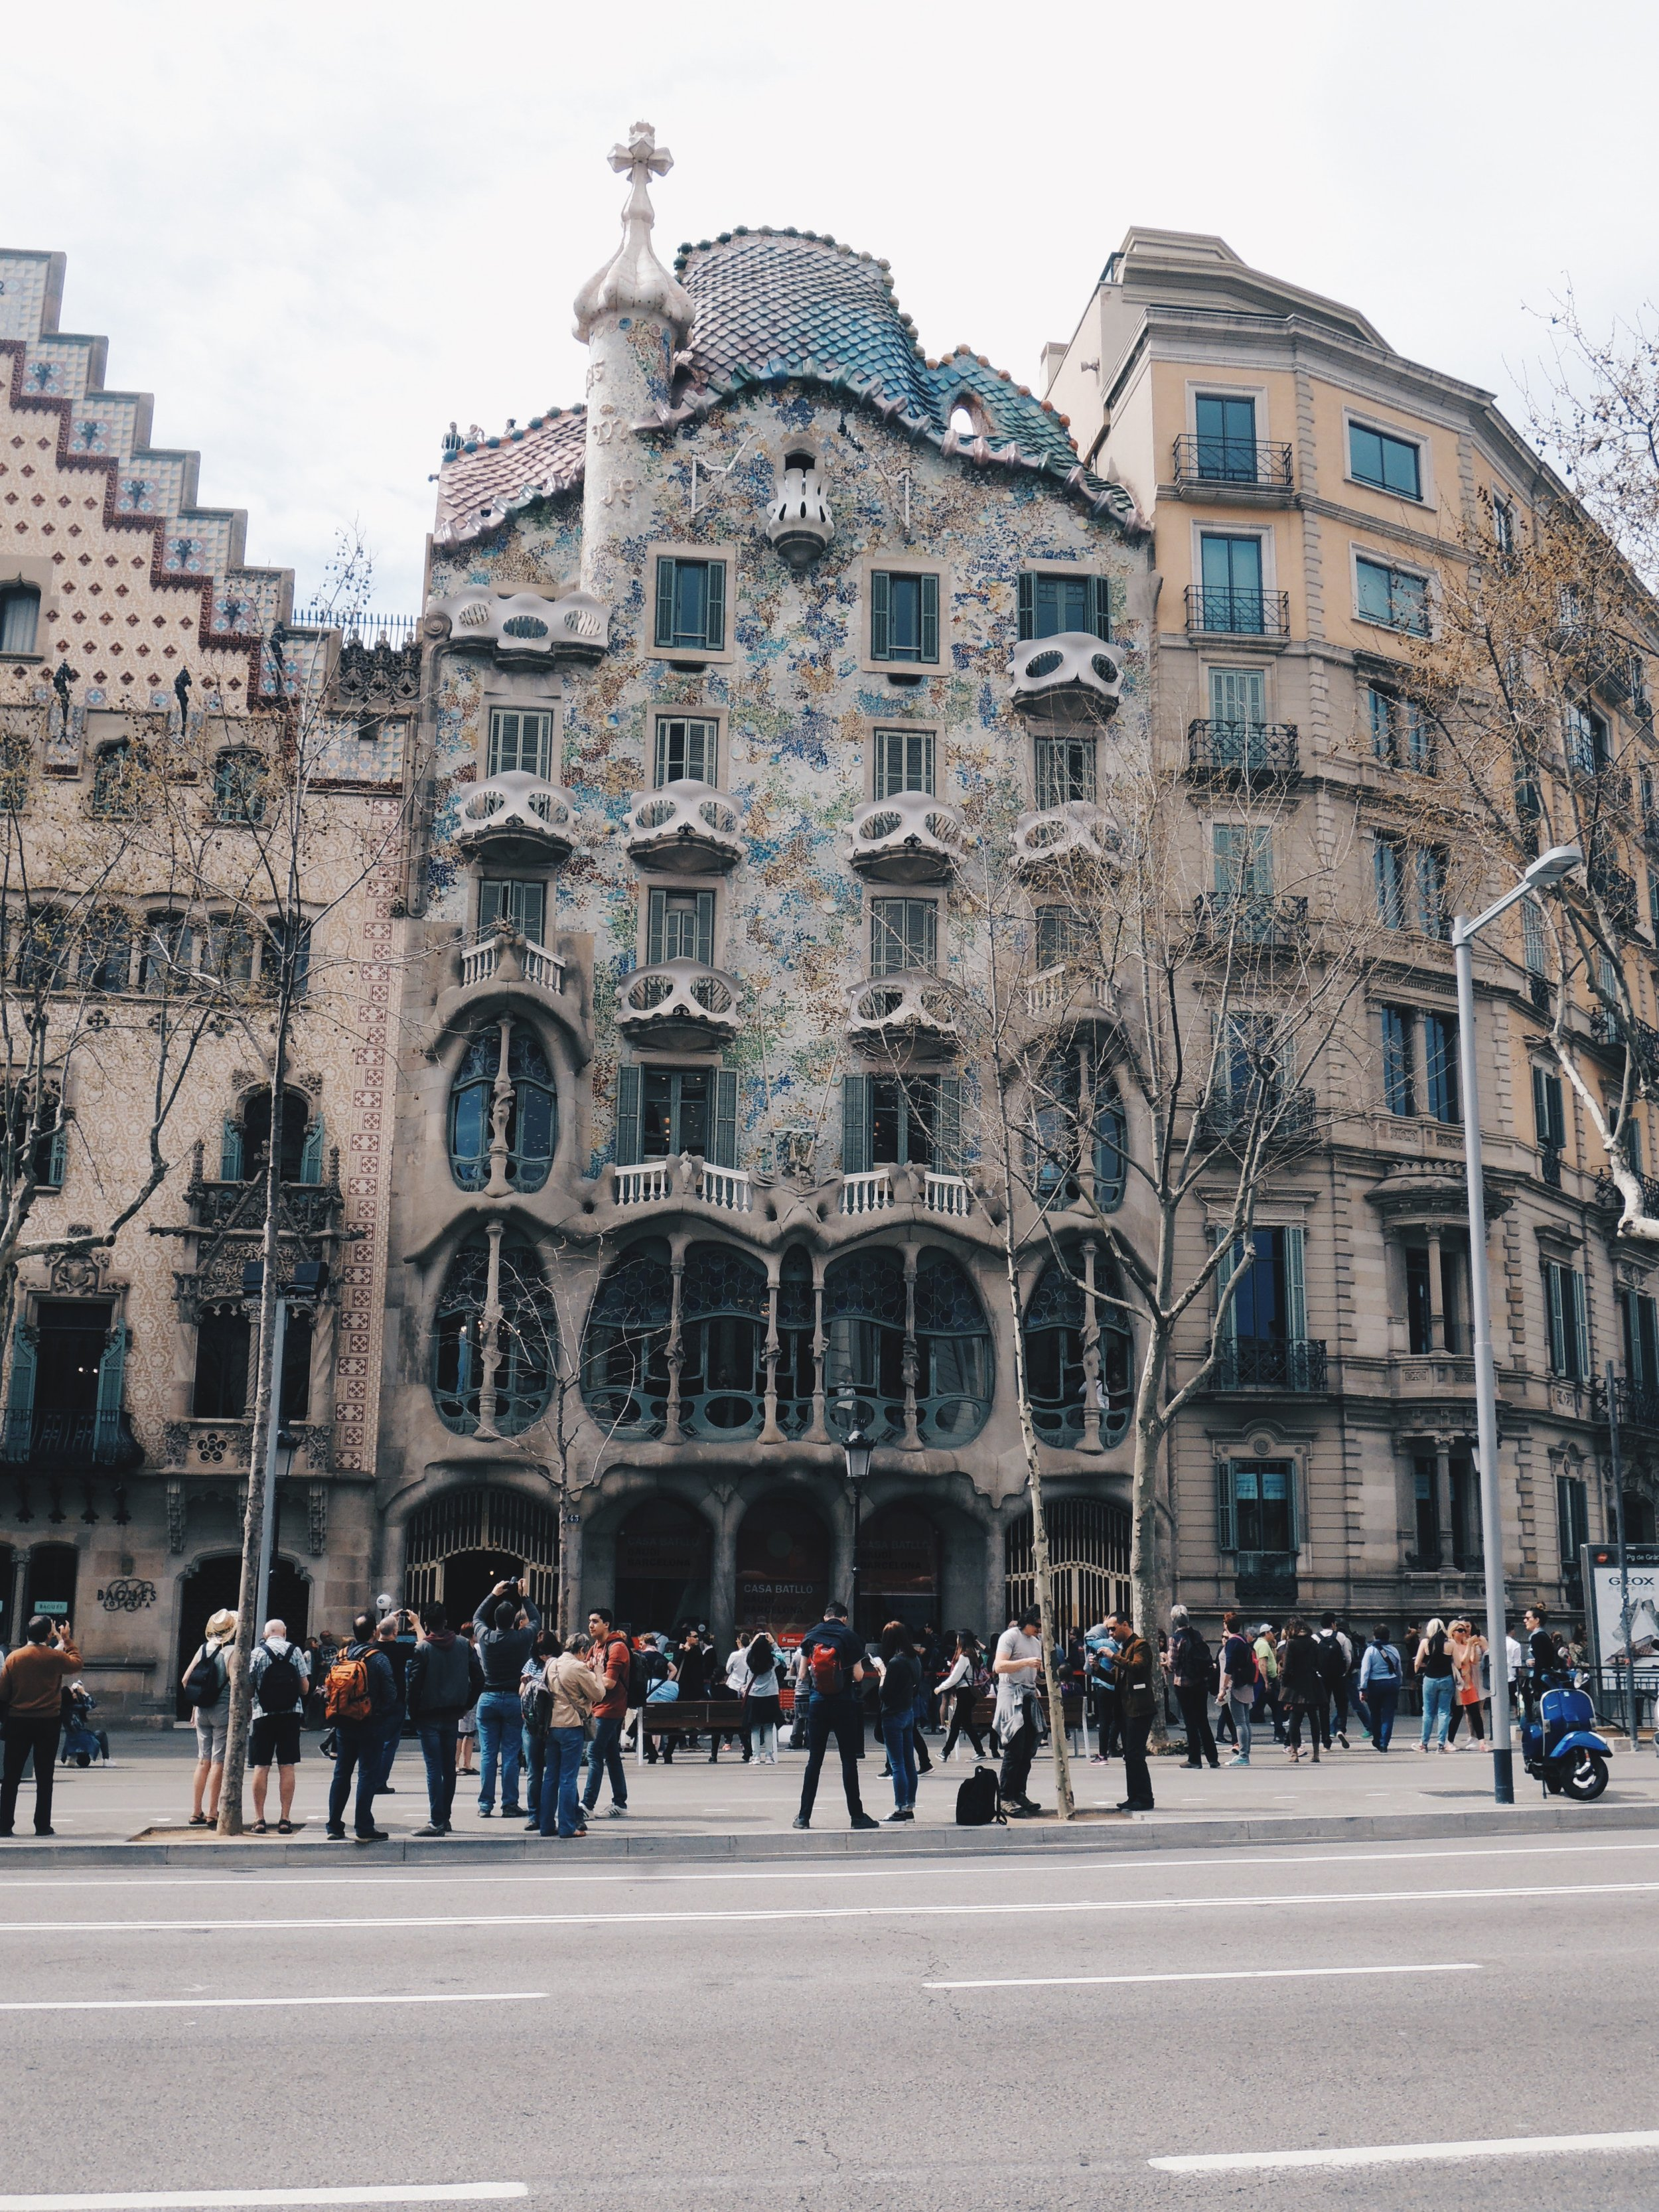 Another of Gaudí's works — Casa Batllo